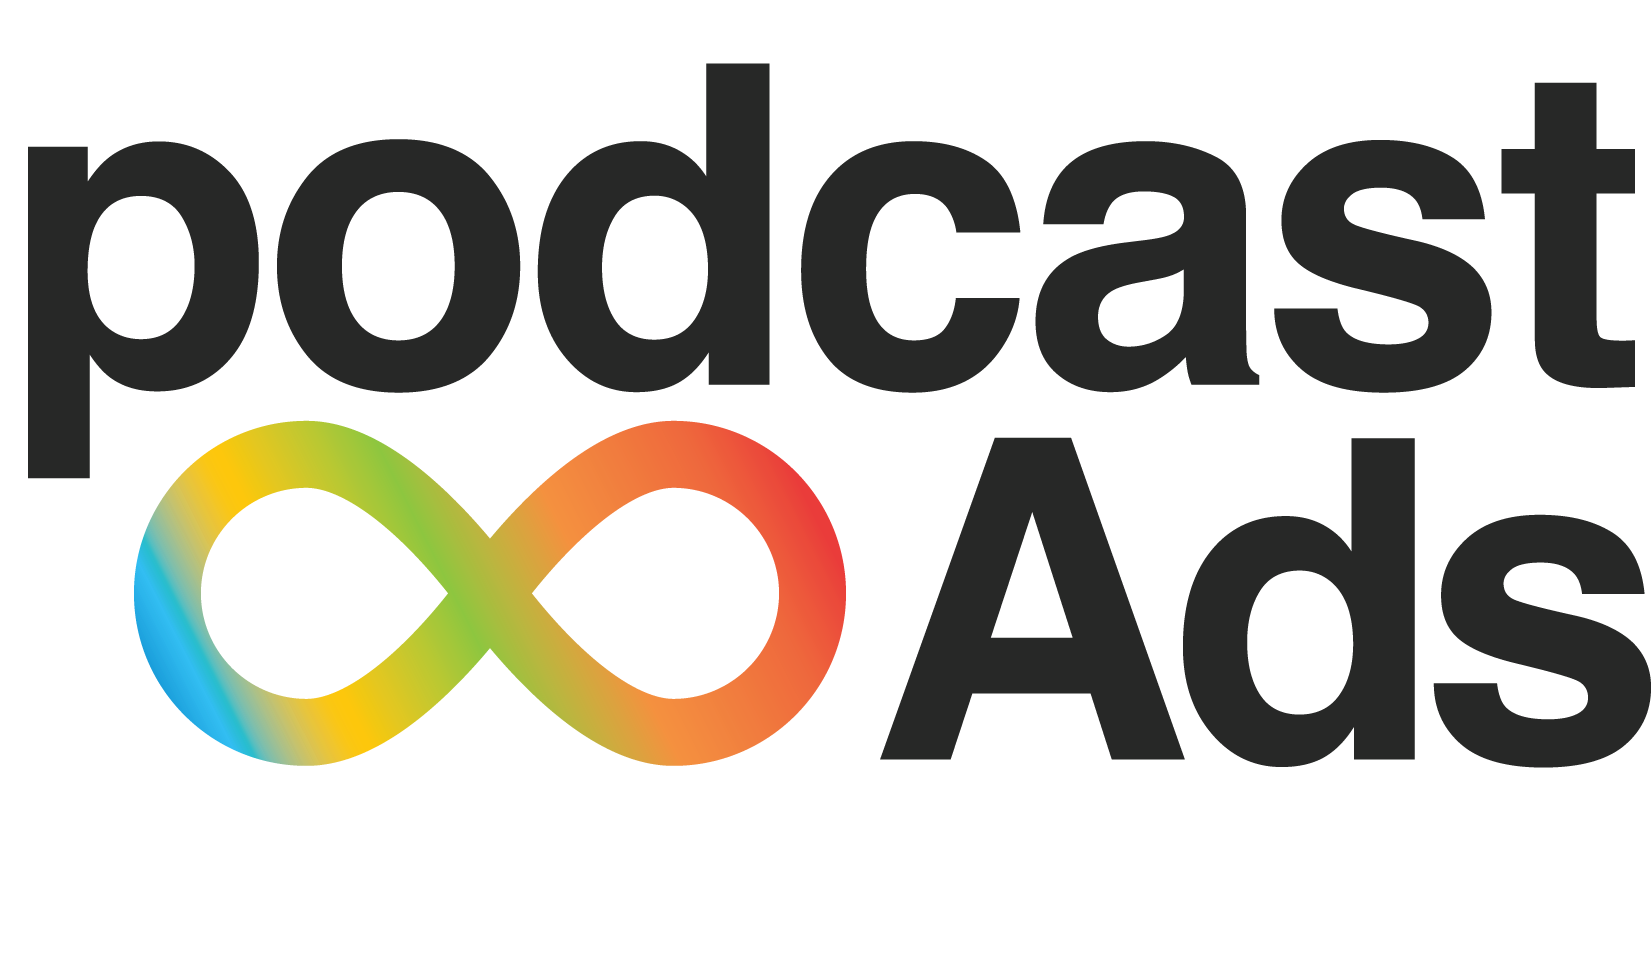 PODCAST ADS